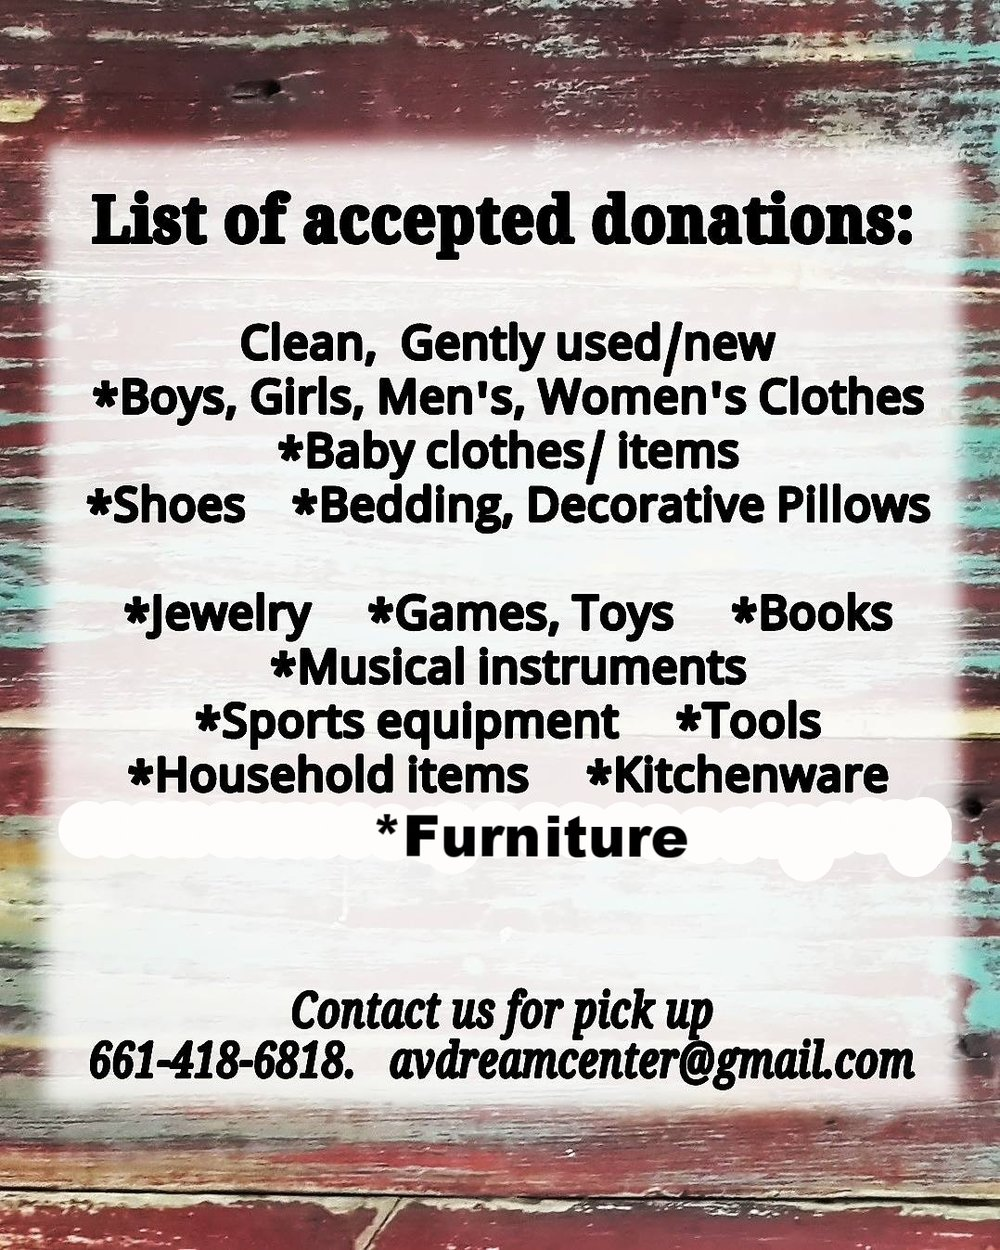 Call for pick up 661-418-6818 or drop off during store hours: Tues-Fri 10 am-5 pm